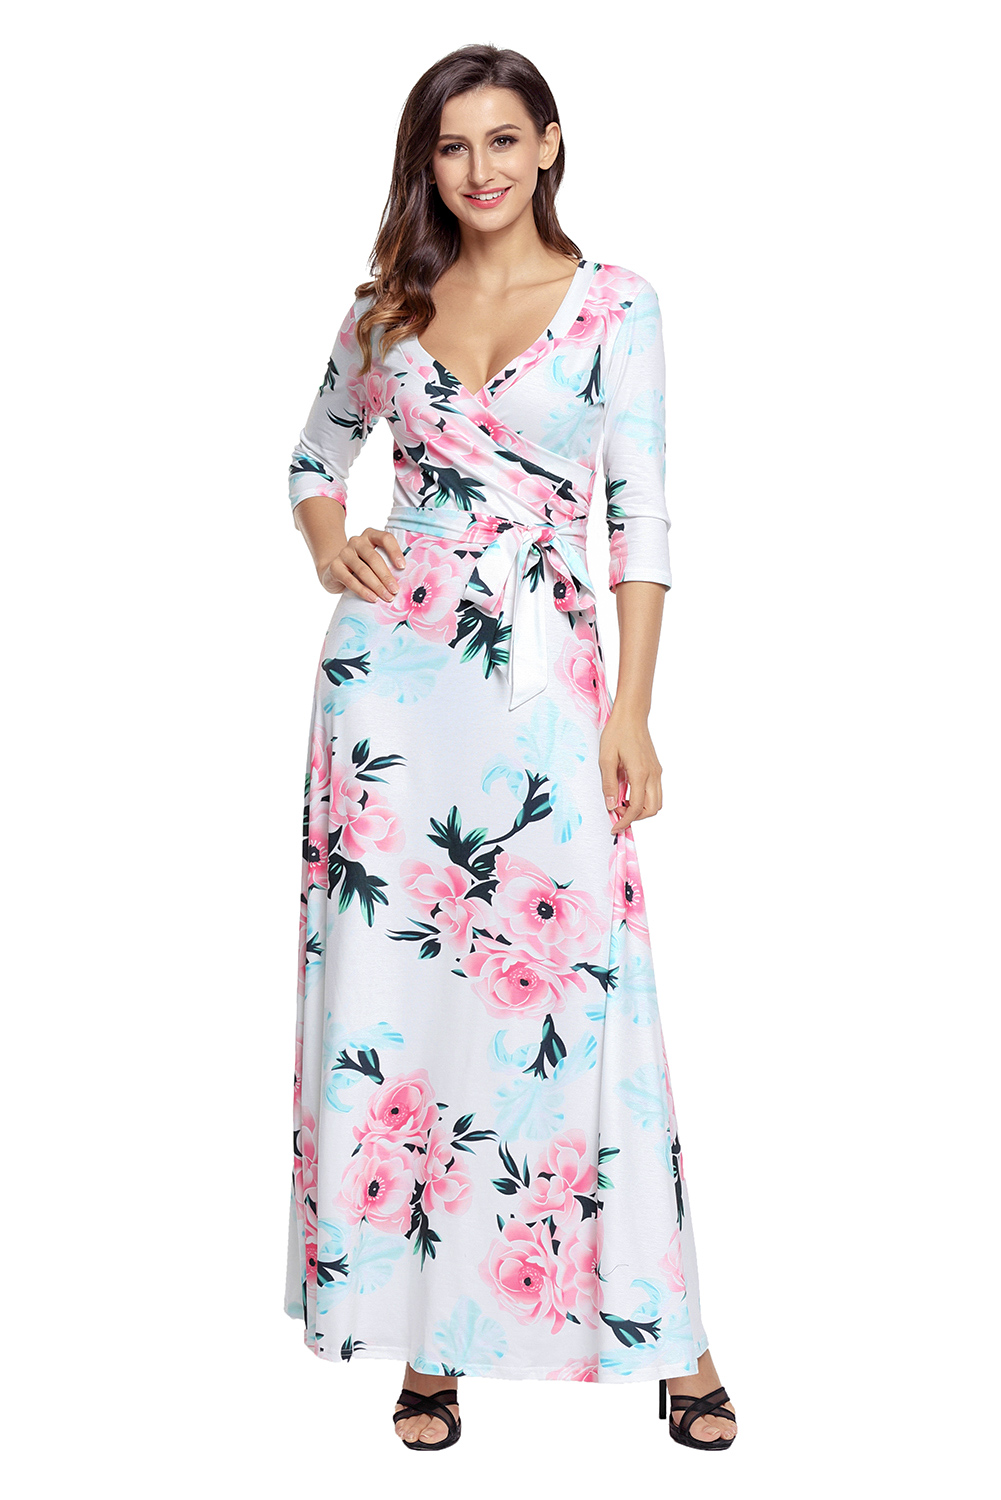 Large-size Womens Floral Print Sexy V-neck With A High-waisted Dress Elegant Summer Half Sleeve Casual Dress Syd42